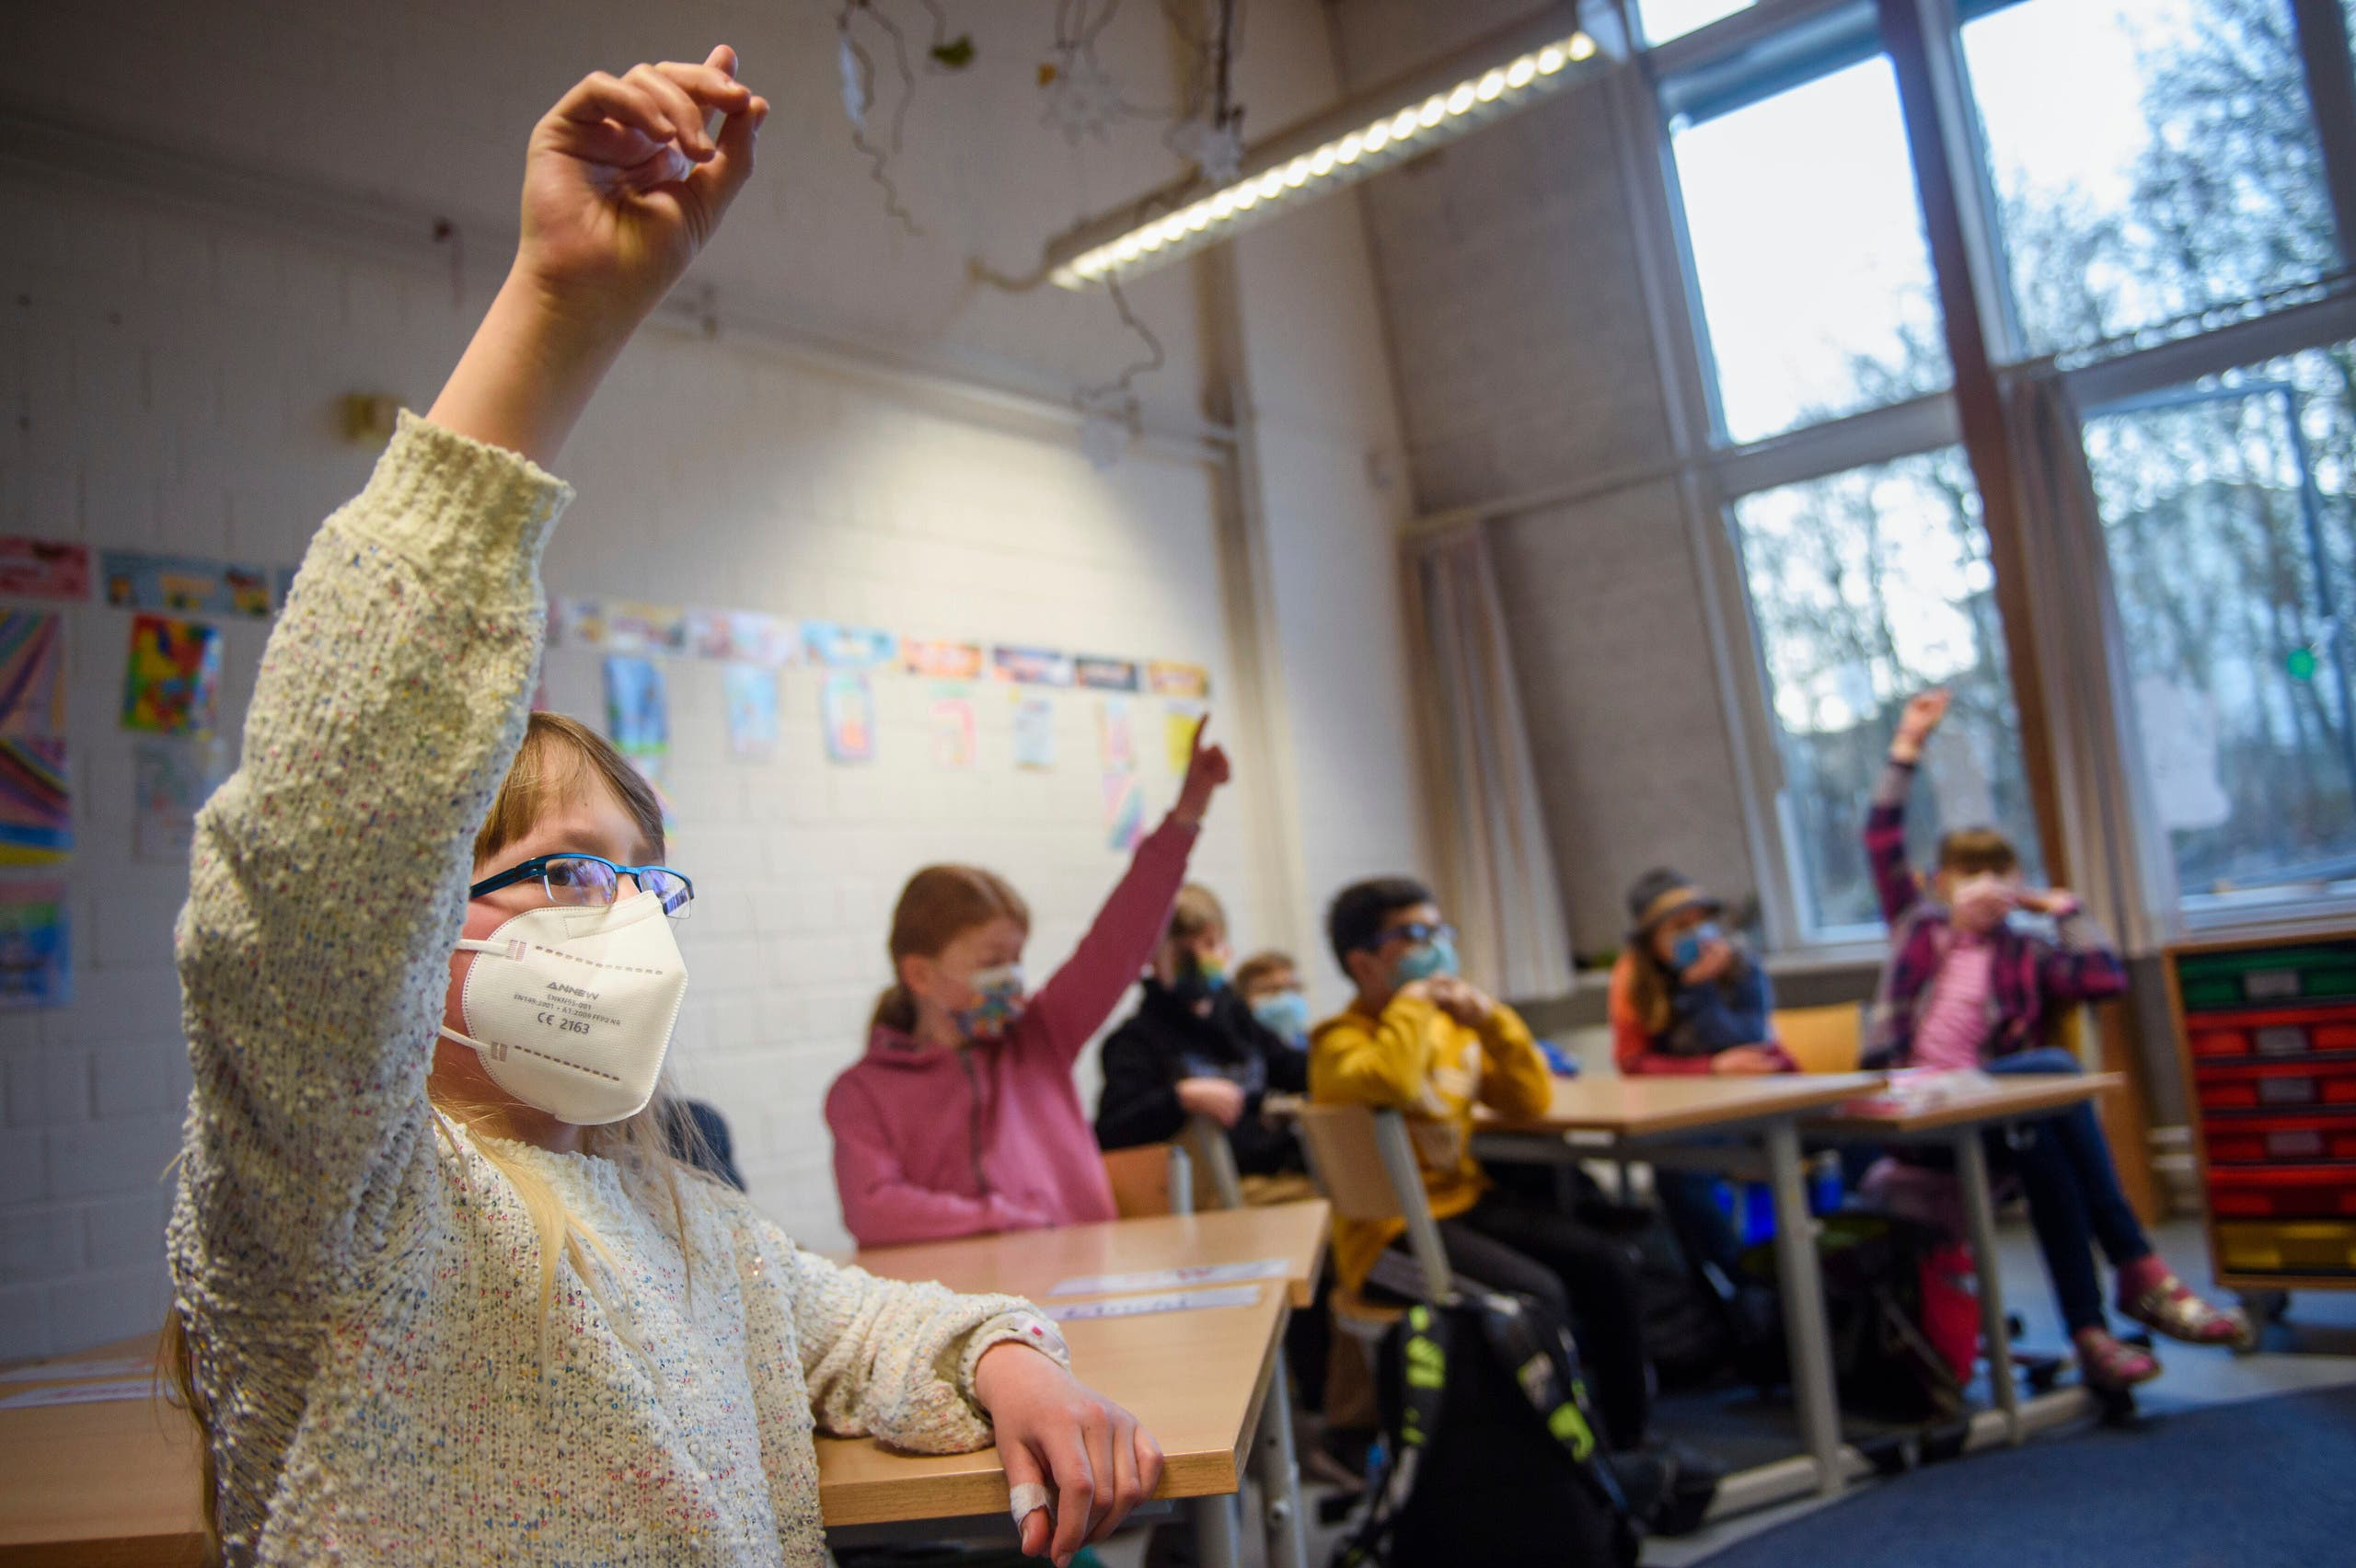 Pupils attend a lesson at the 'Russee' elementary school in Kiel, northern Germany, Monday, Feb. 22, 2021. (AP)